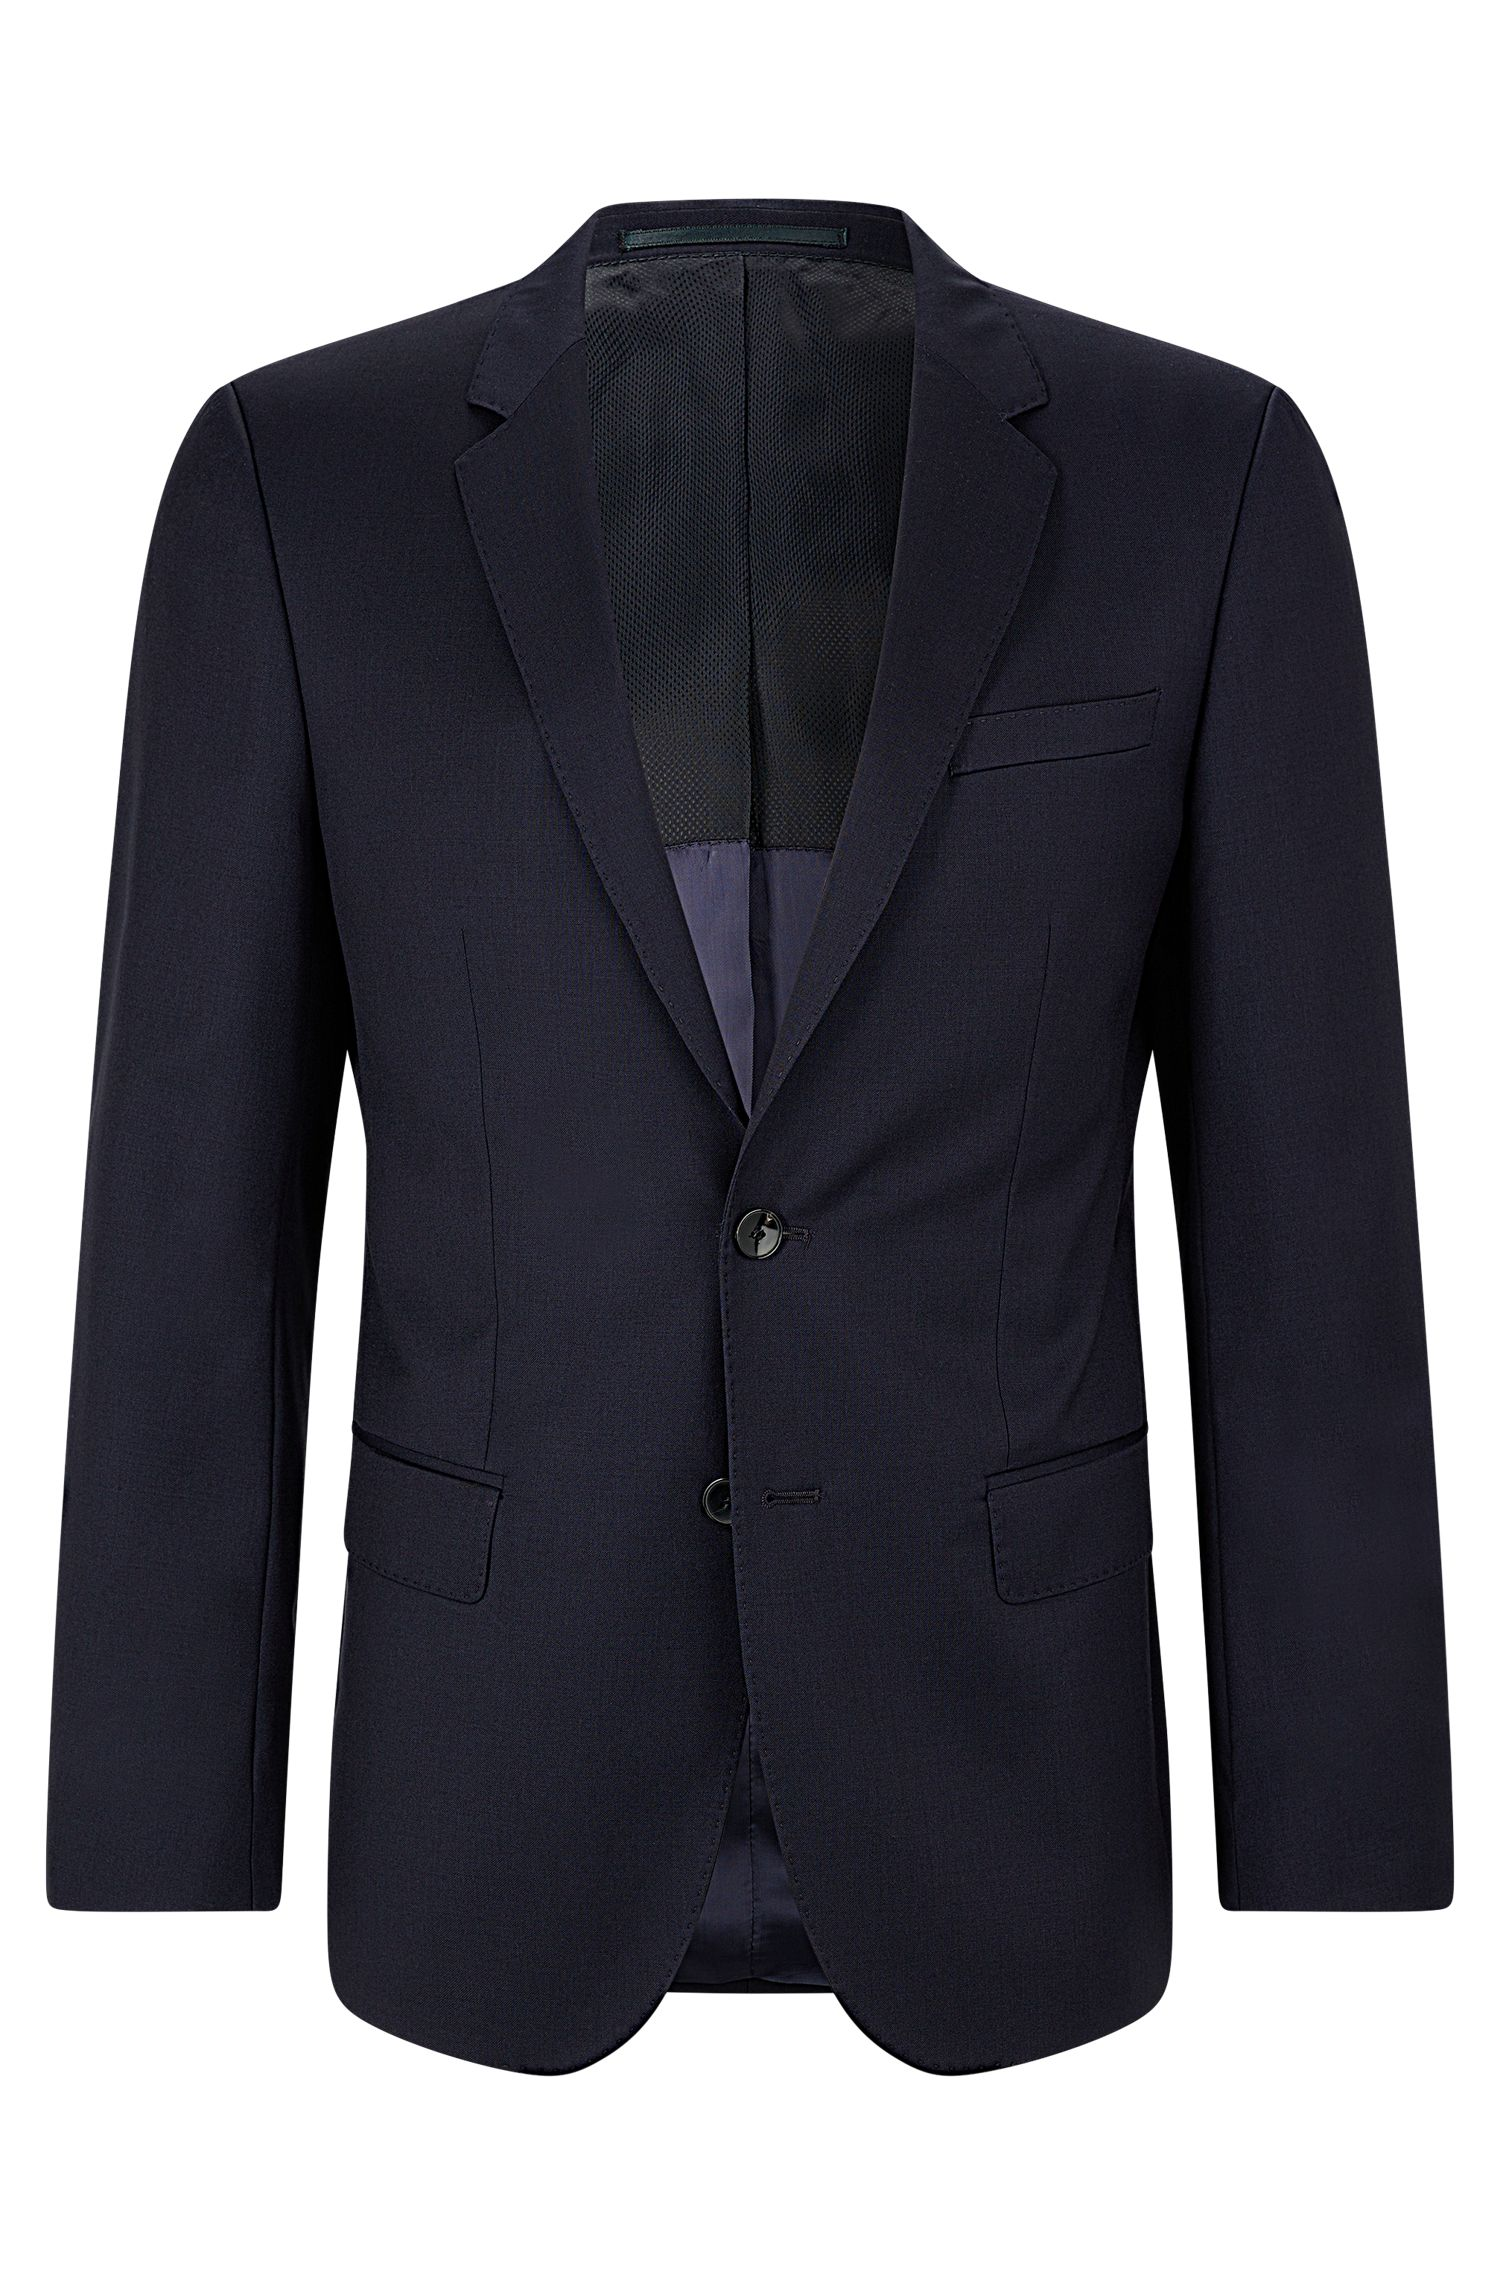 Italian Virgin Wool Sport Coat, Slim Fit | Hayes CYL, Dark Blue